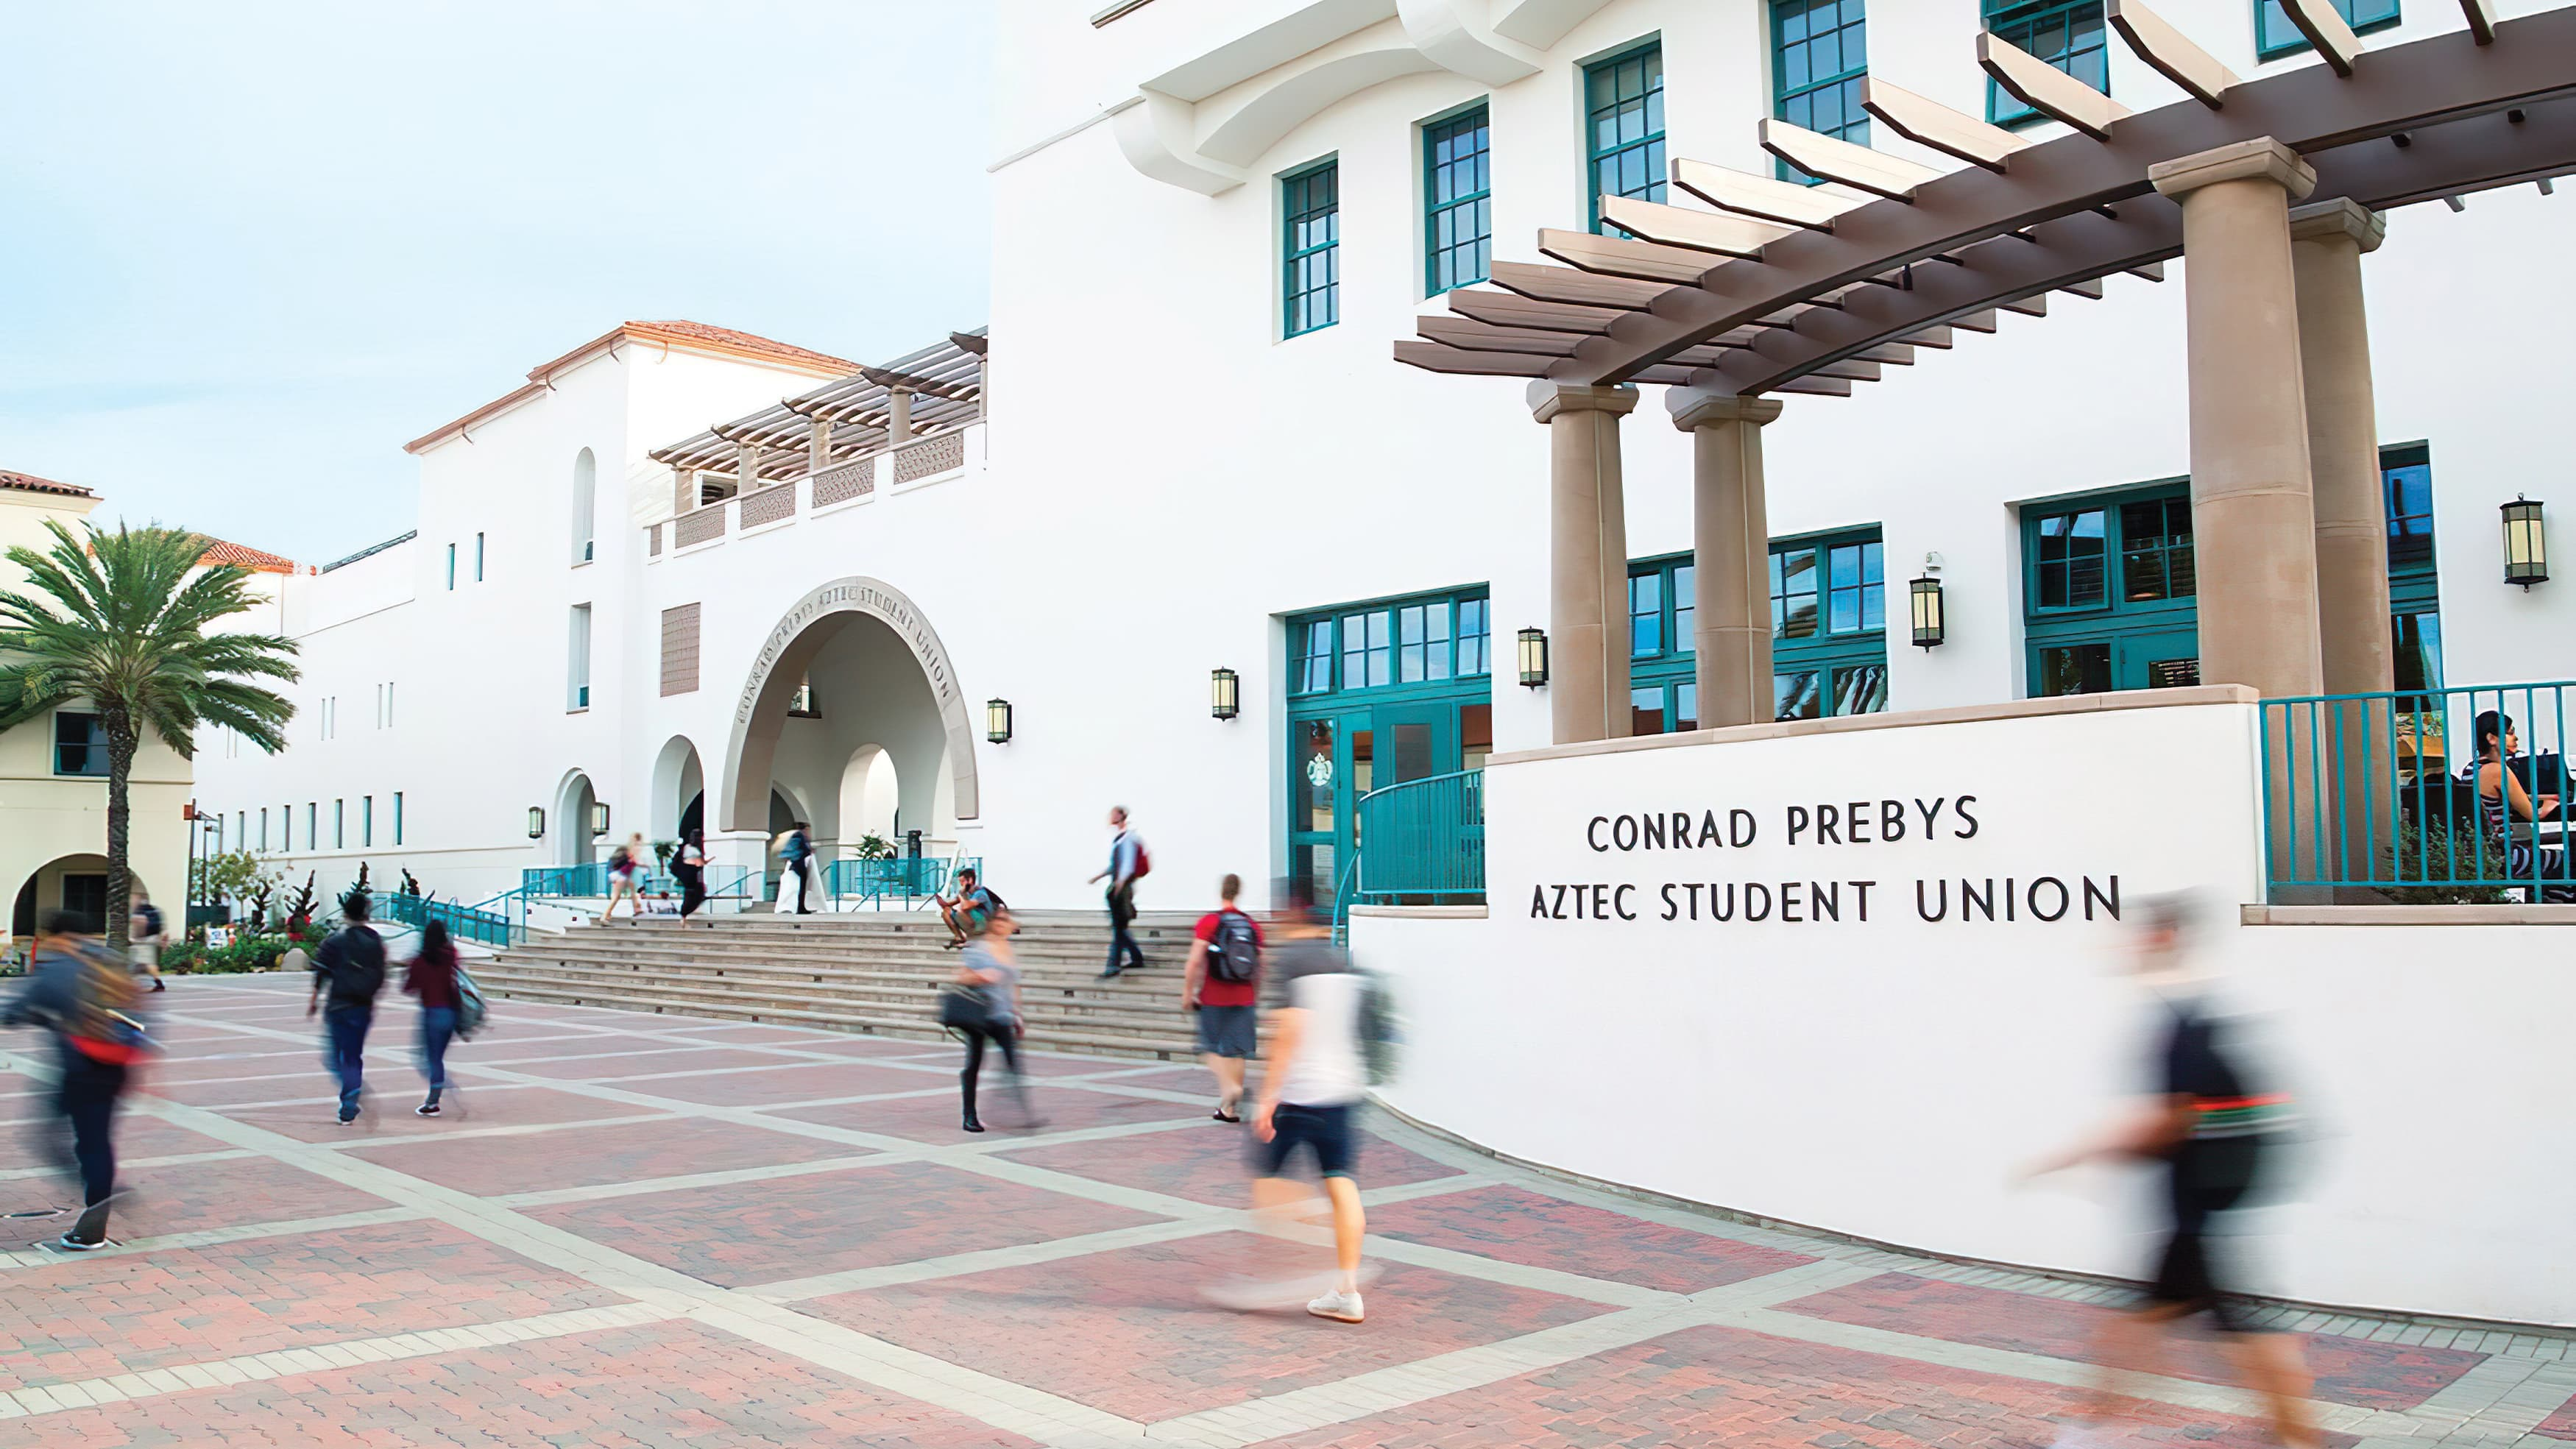 Students on campus walk past the student union identity mounted to the architecture